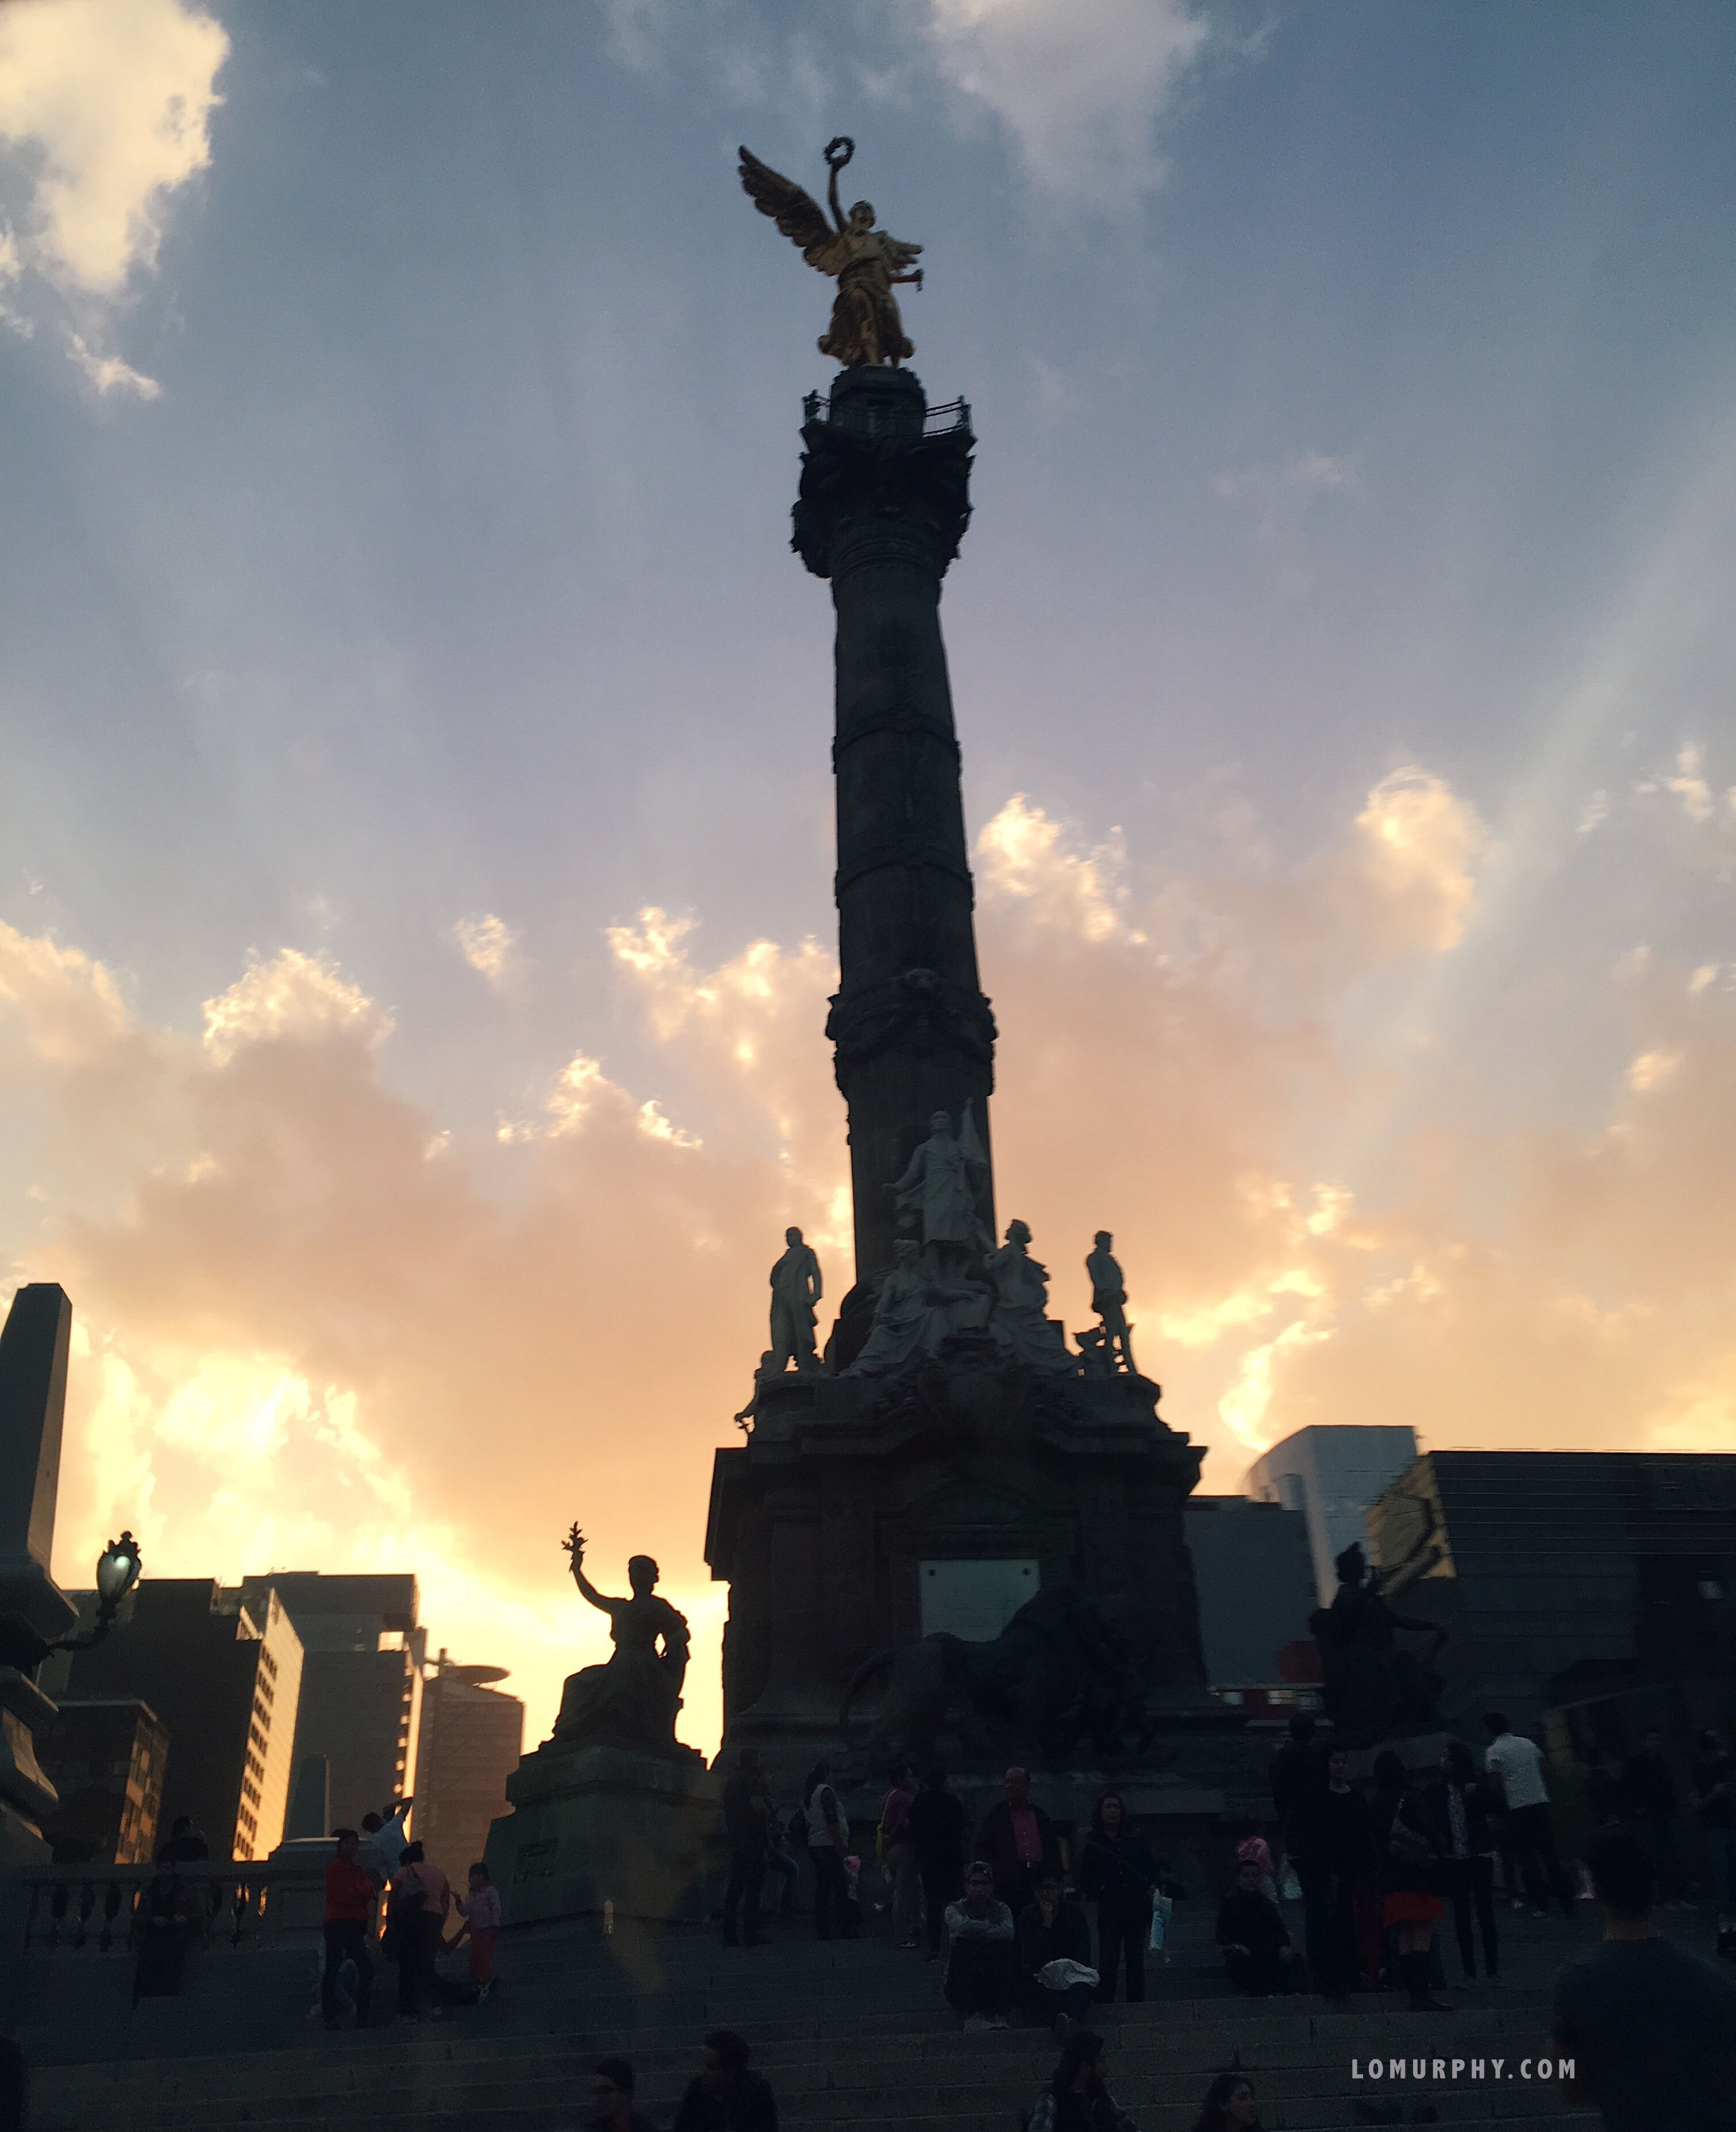 Lomurphy.com, Mexico-City-Guide, Travel-Blogger, Mexico-City-Travel